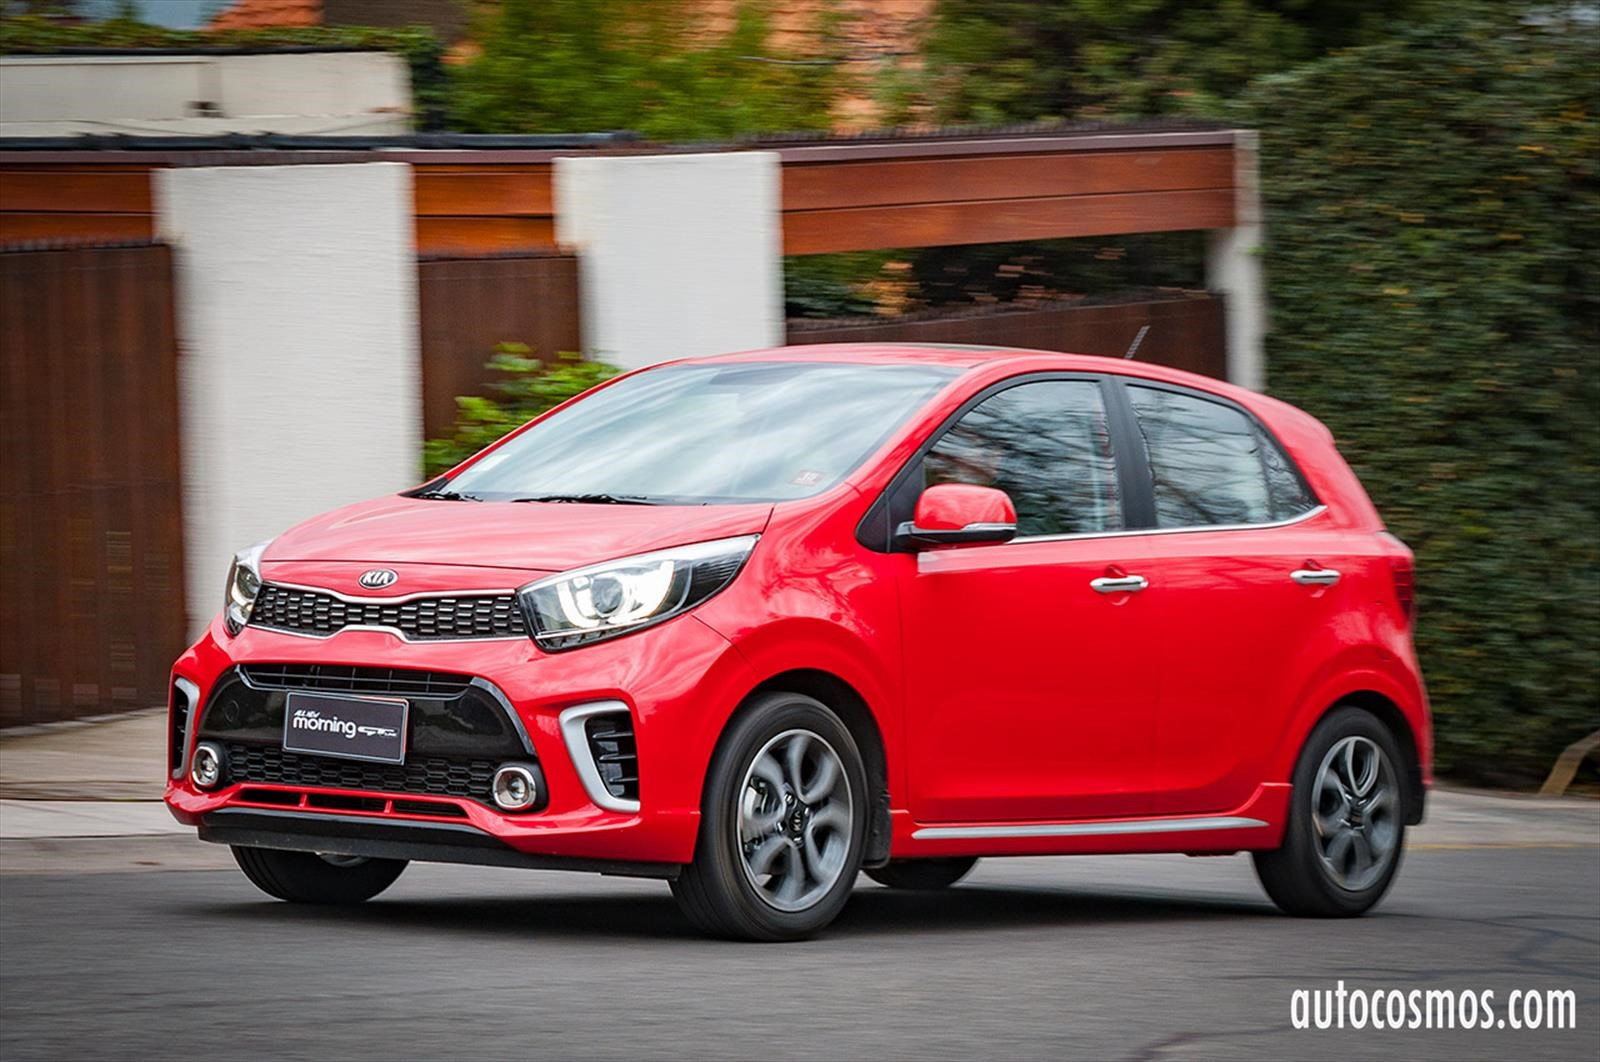 kia morning 2018. contemporary morning test drive kia morning gtline 2018 throughout kia morning